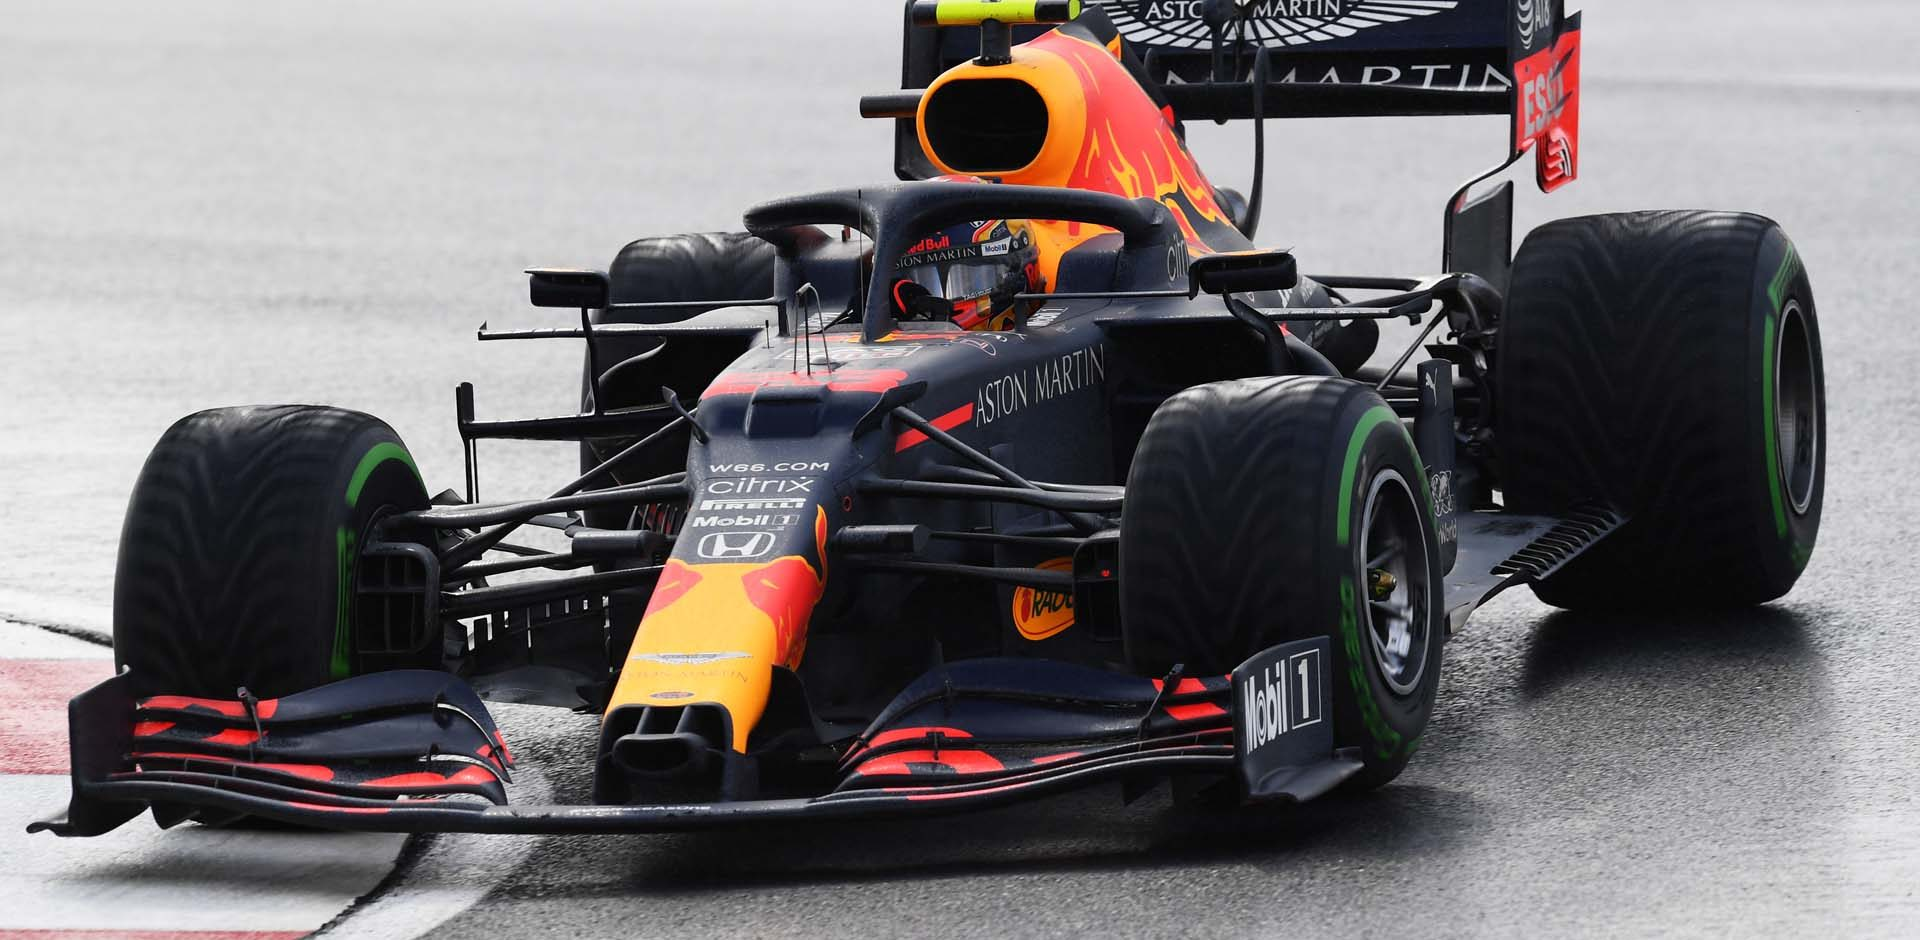 ISTANBUL, TURKEY - NOVEMBER 15: Alexander Albon of Thailand driving the (23) Aston Martin Red Bull Racing RB16 on track during the F1 Grand Prix of Turkey at Intercity Istanbul Park on November 15, 2020 in Istanbul, Turkey. (Photo by Clive Mason/Getty Images)